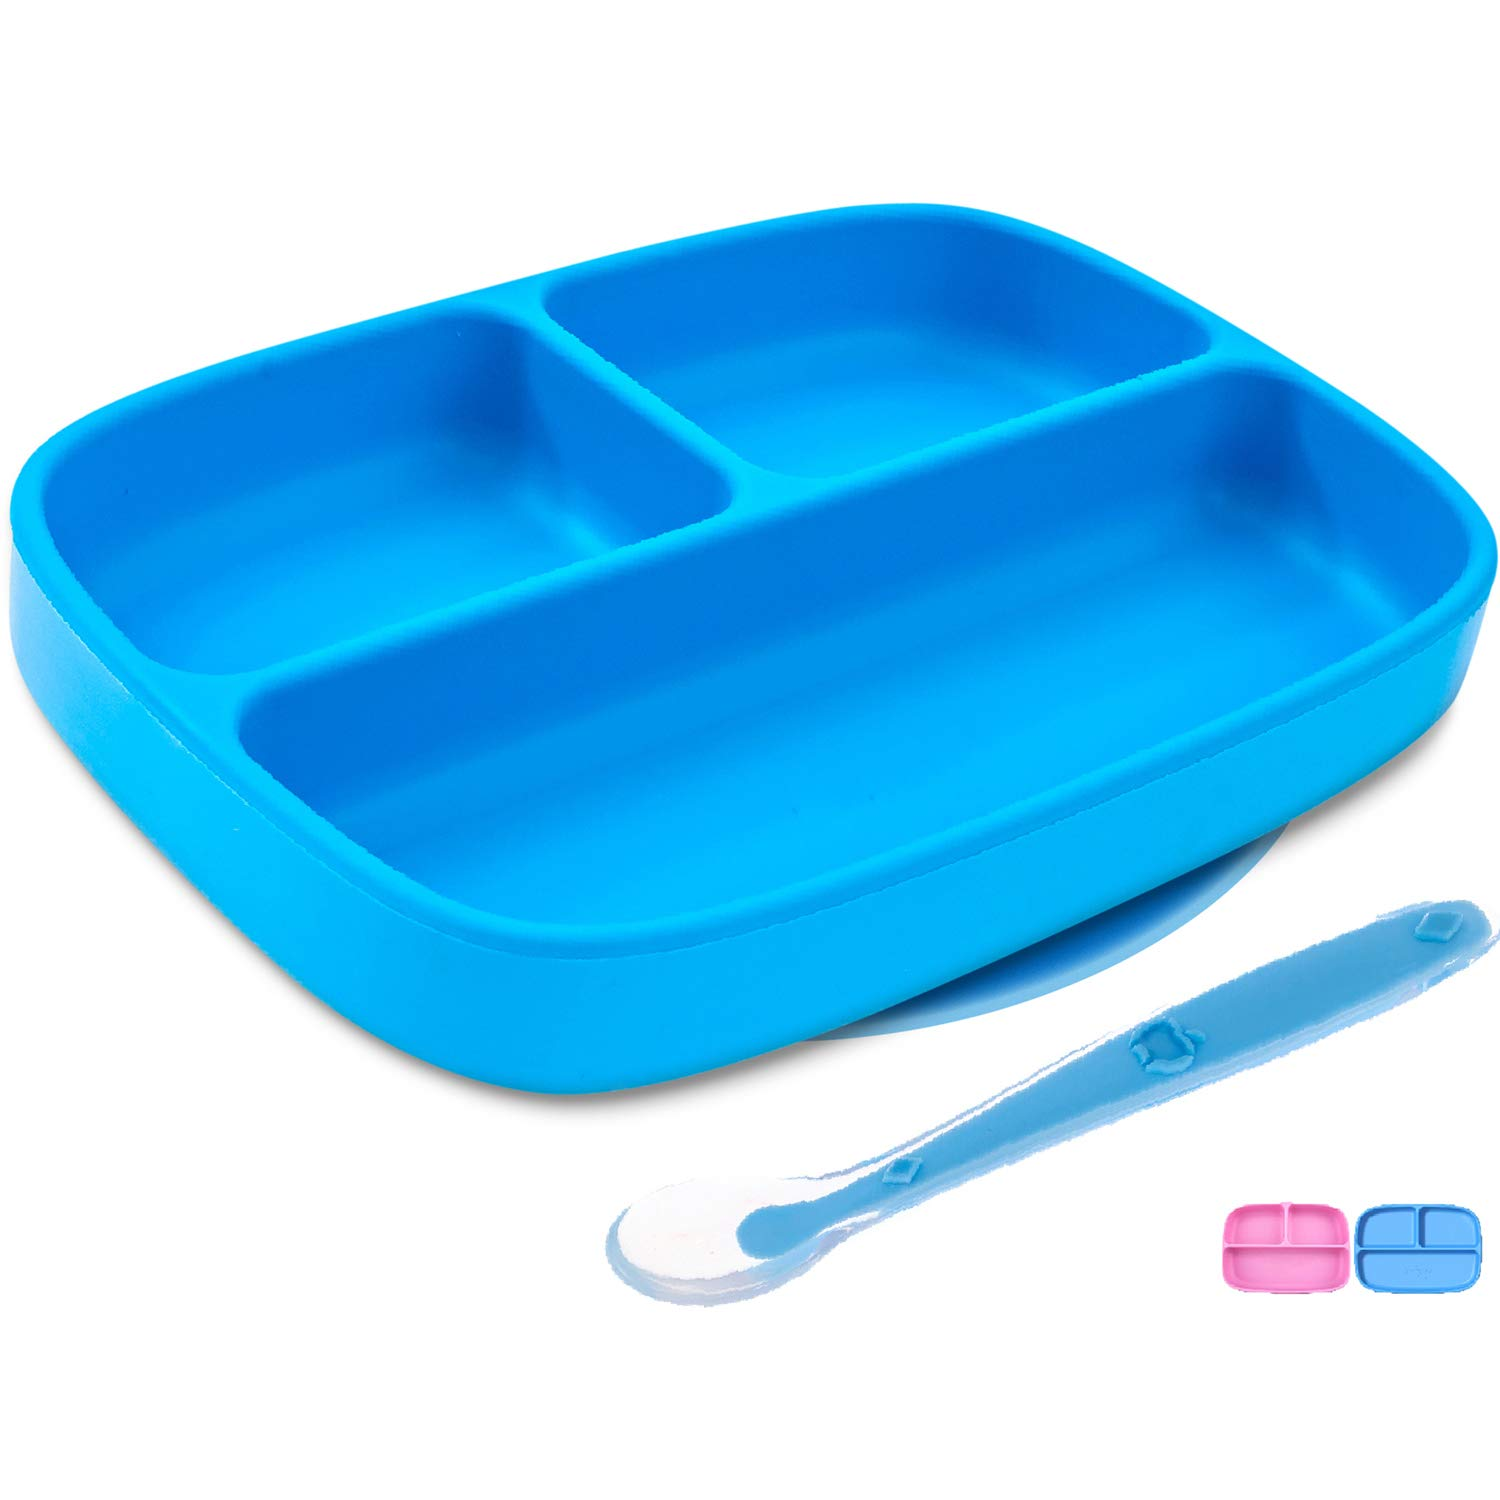 Silikong Suction Plate for Toddlers + Silicone Spoon   BPA Free, FDA Approved   Microwave, Dishwasher and Oven Safe   Stay Put Divided Baby Feeding Bowls and Dishes for Kids and Infants (Blue) by Silikong